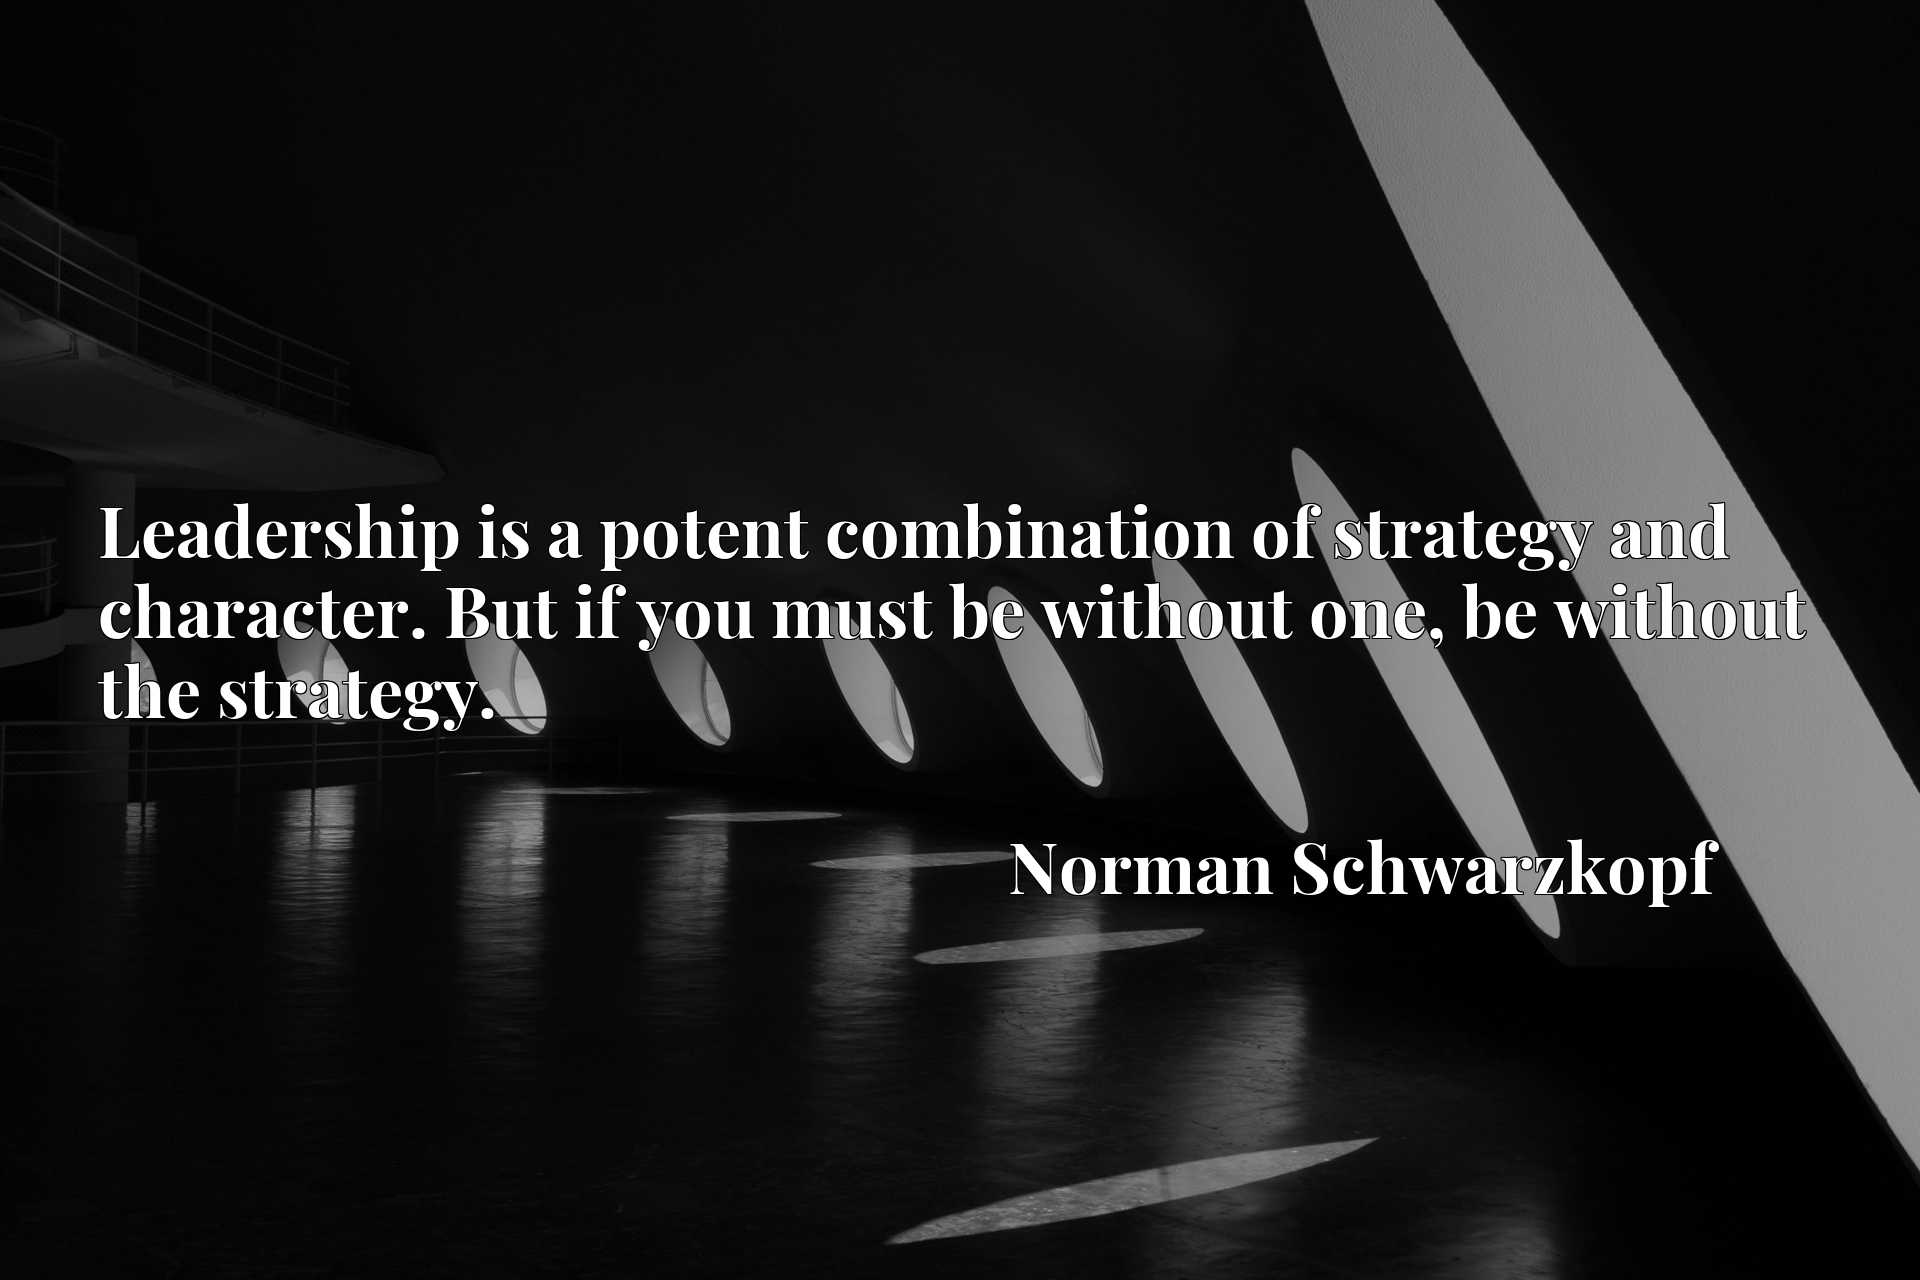 Leadership is a potent combination of strategy and character. But if you must be without one, be without the strategy.